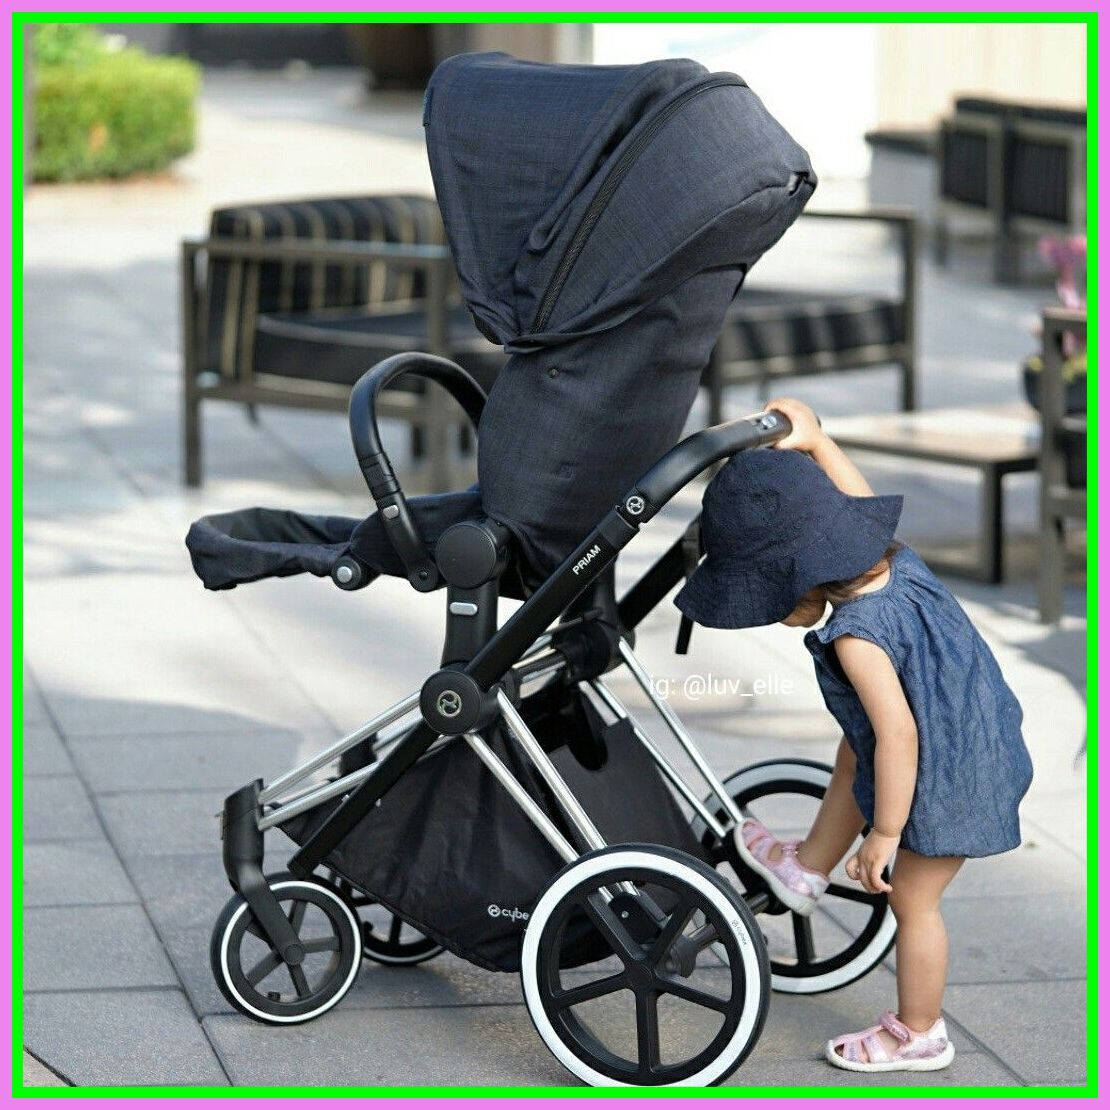 90 reference of stroller Rose Gold manhattan grey in 2020